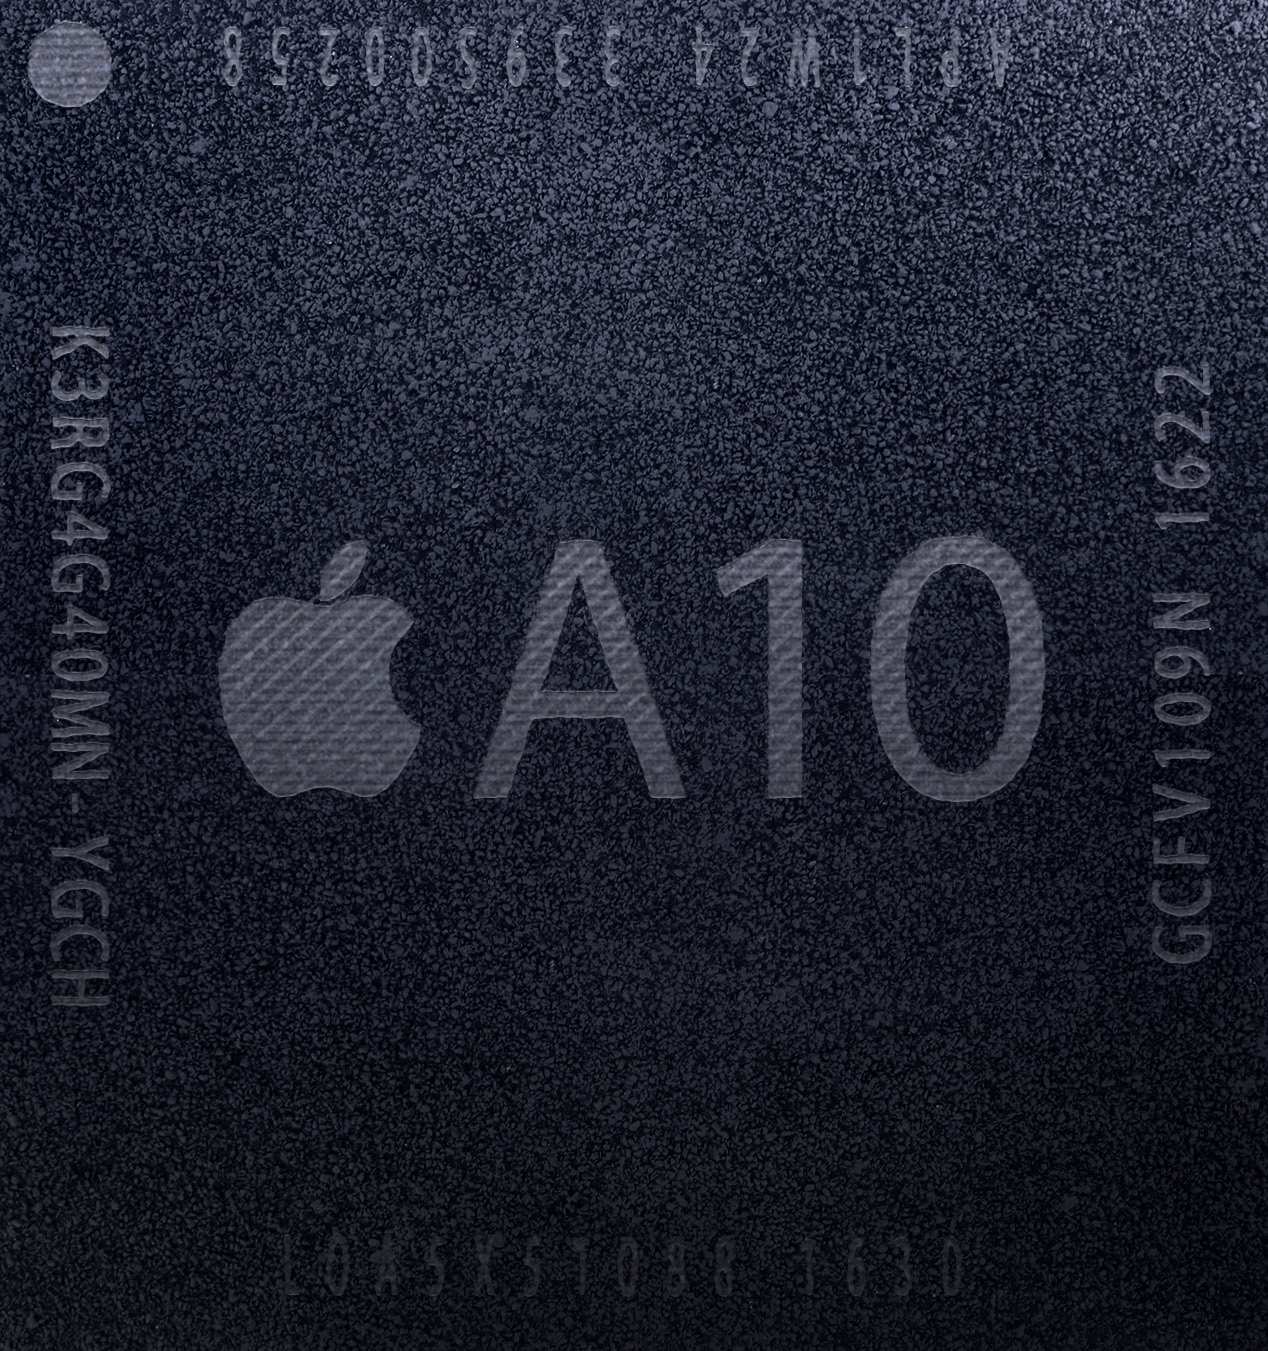 Apple A10 Wikipedia